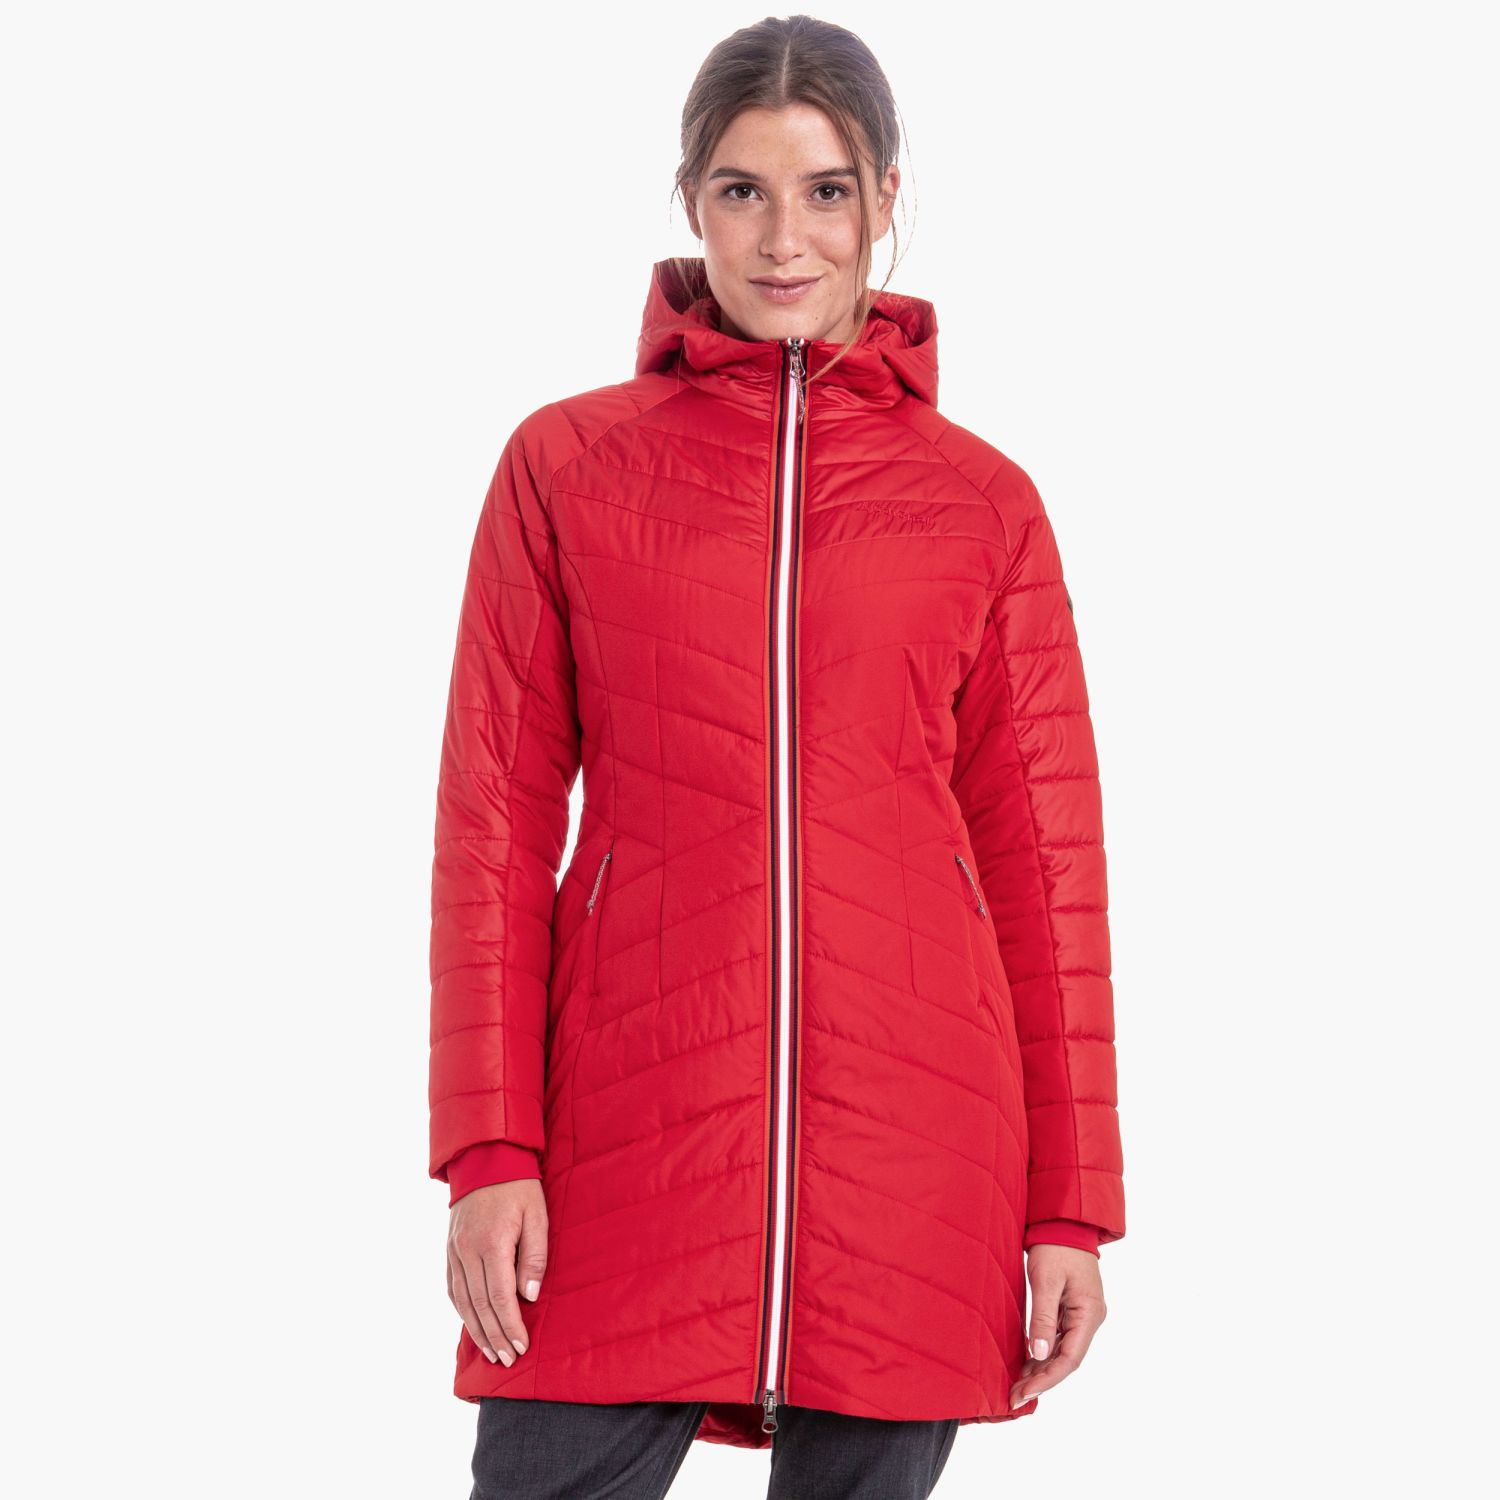 Thermo Coat Coat Orleans RotSchöffel Thermo FJKc3T1l